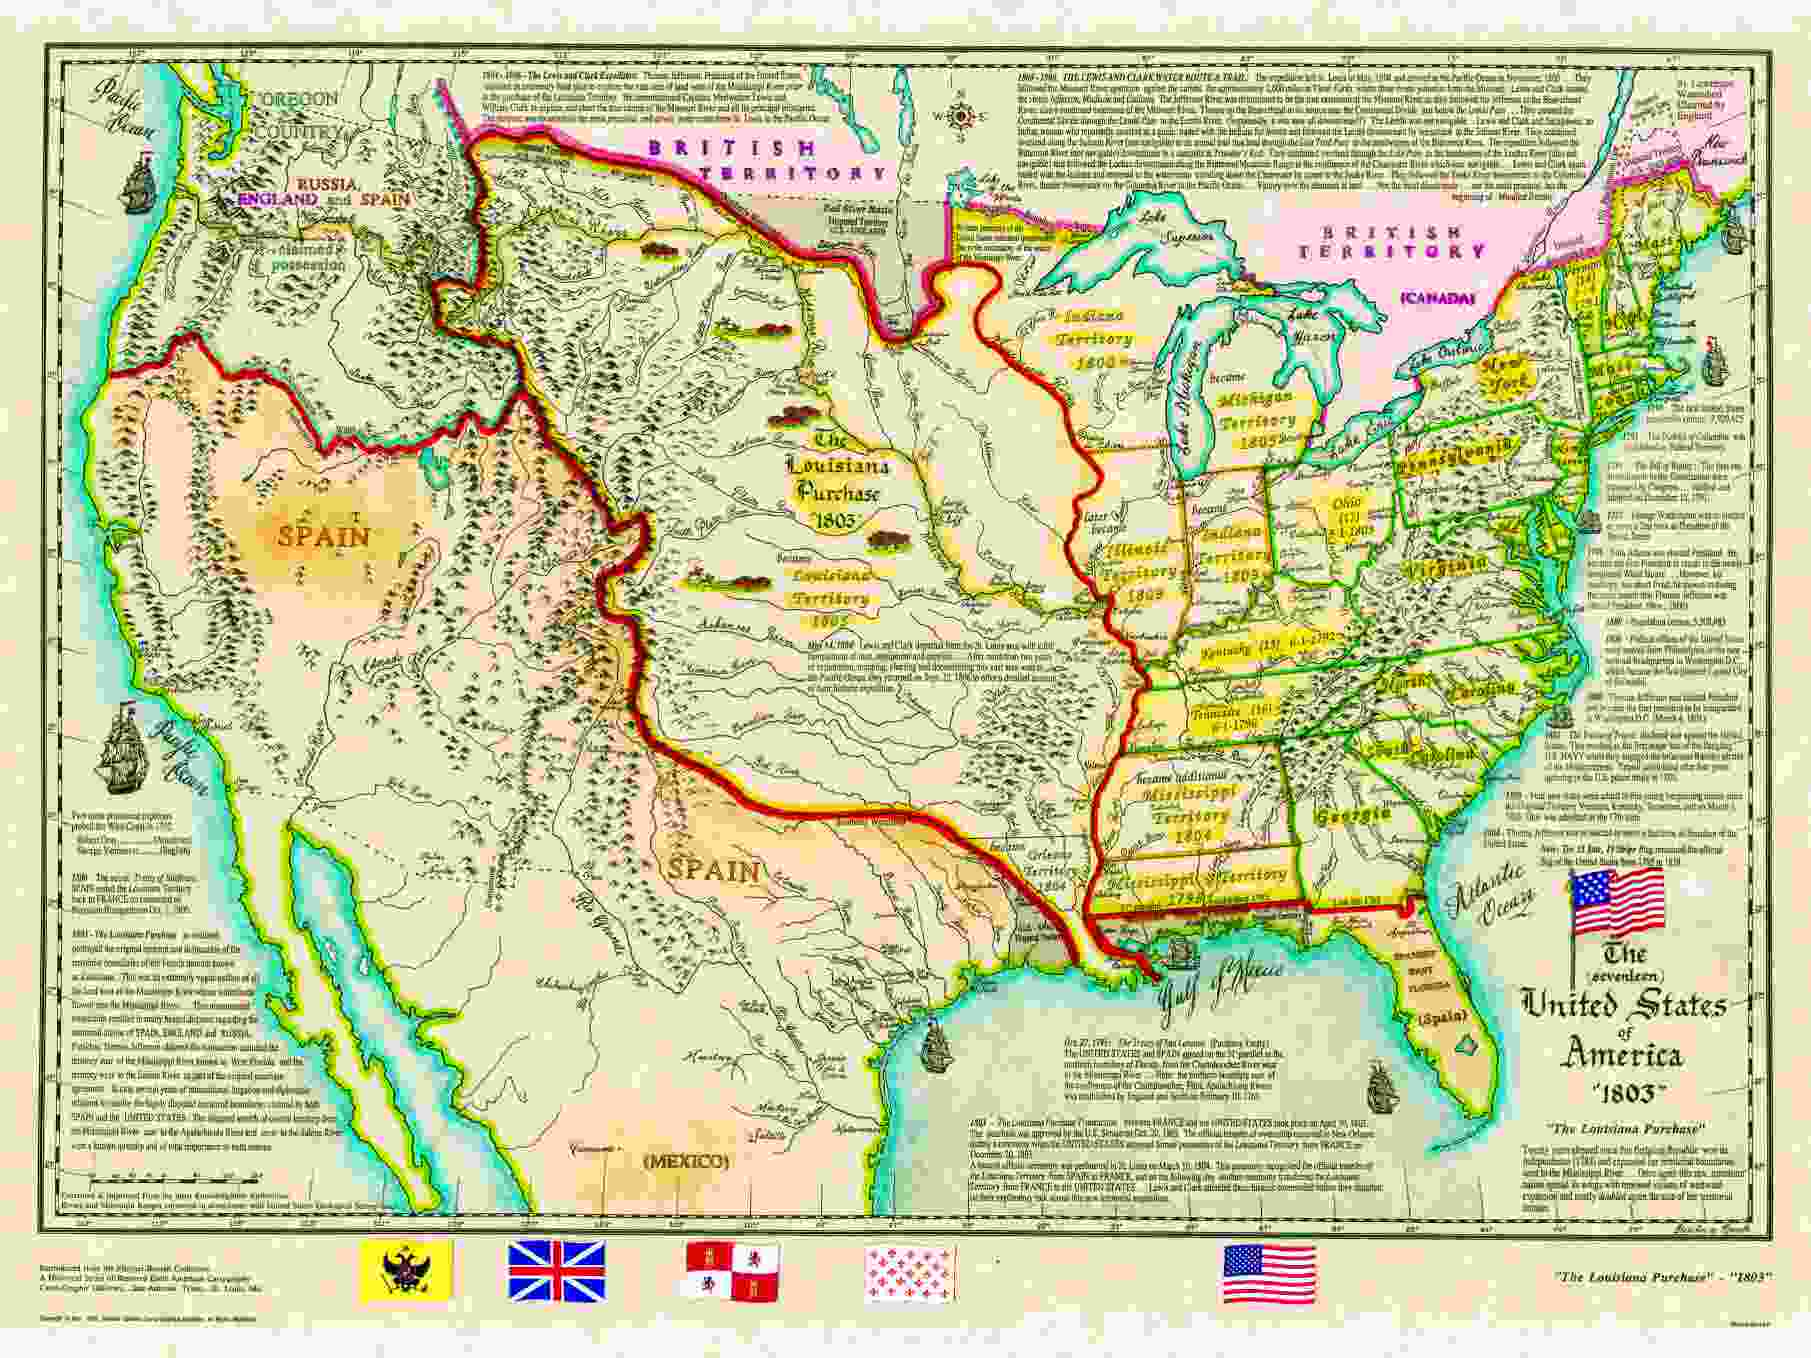 US Historical Series - Map of us territories in 1803